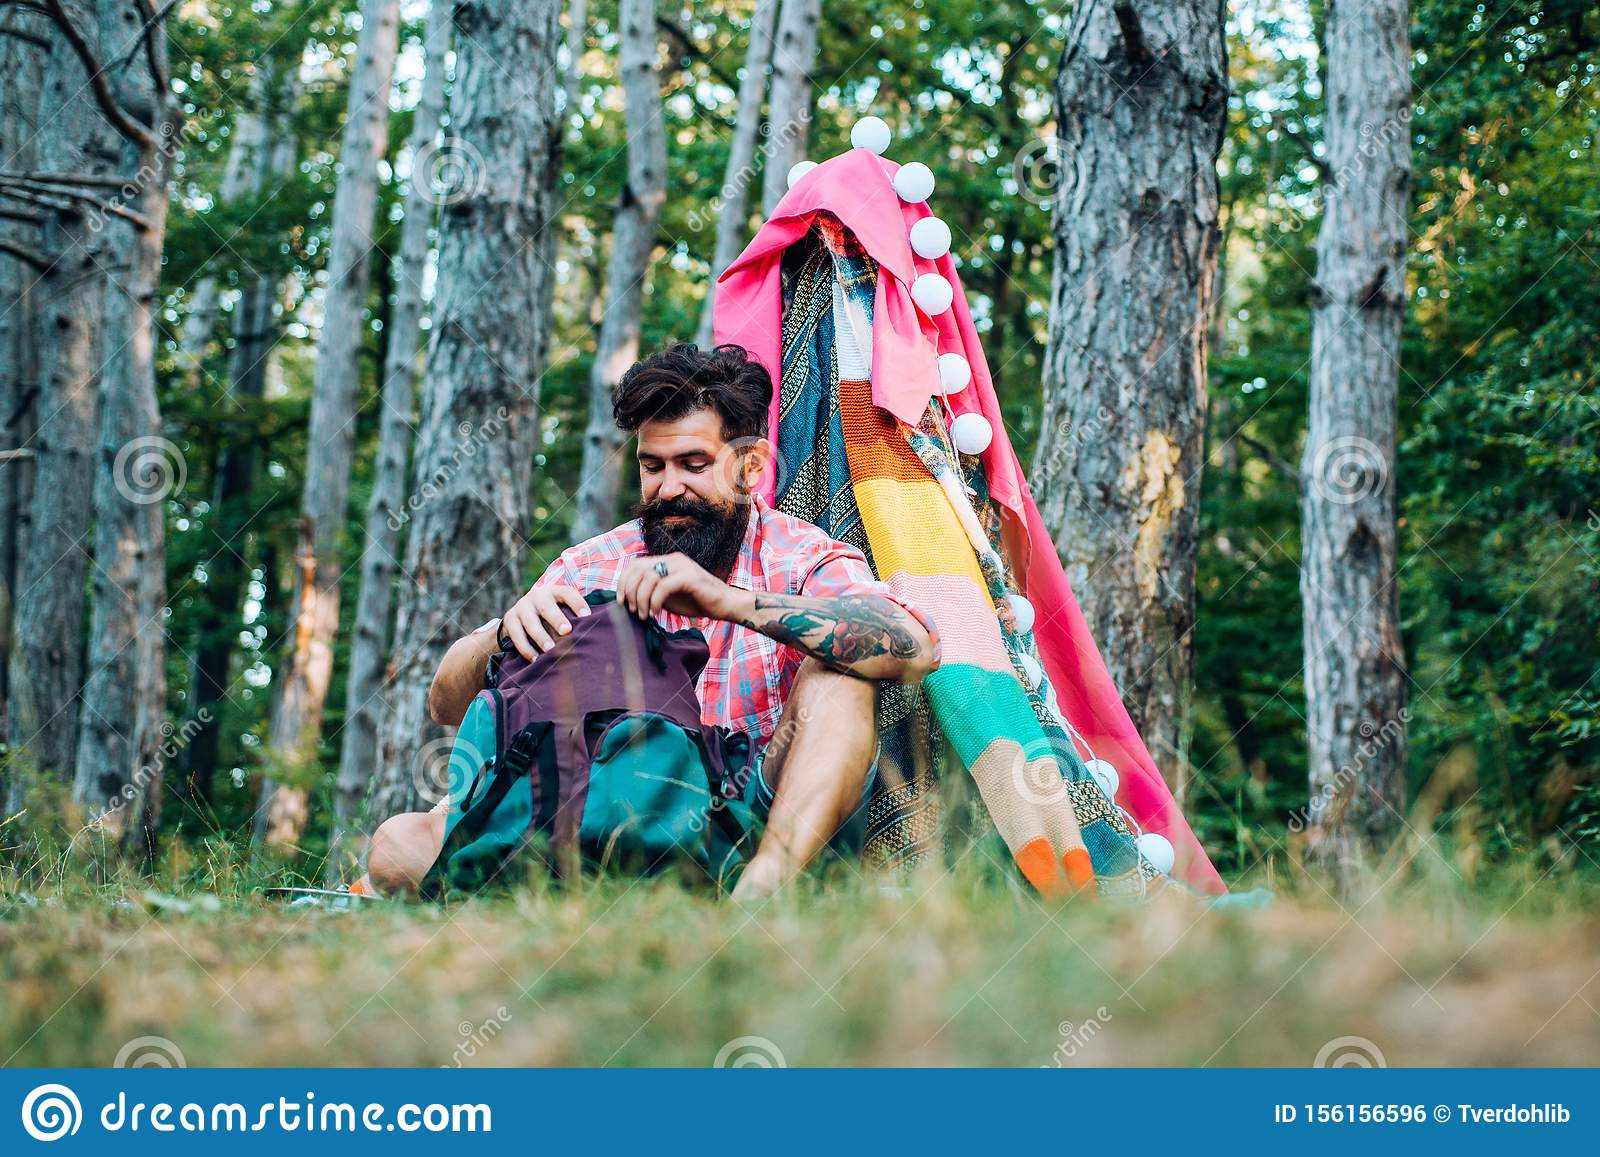 Cozy play tent for man in forest park. Hiking and outdoor recreation concept with flat camping travel. Handsome bearded